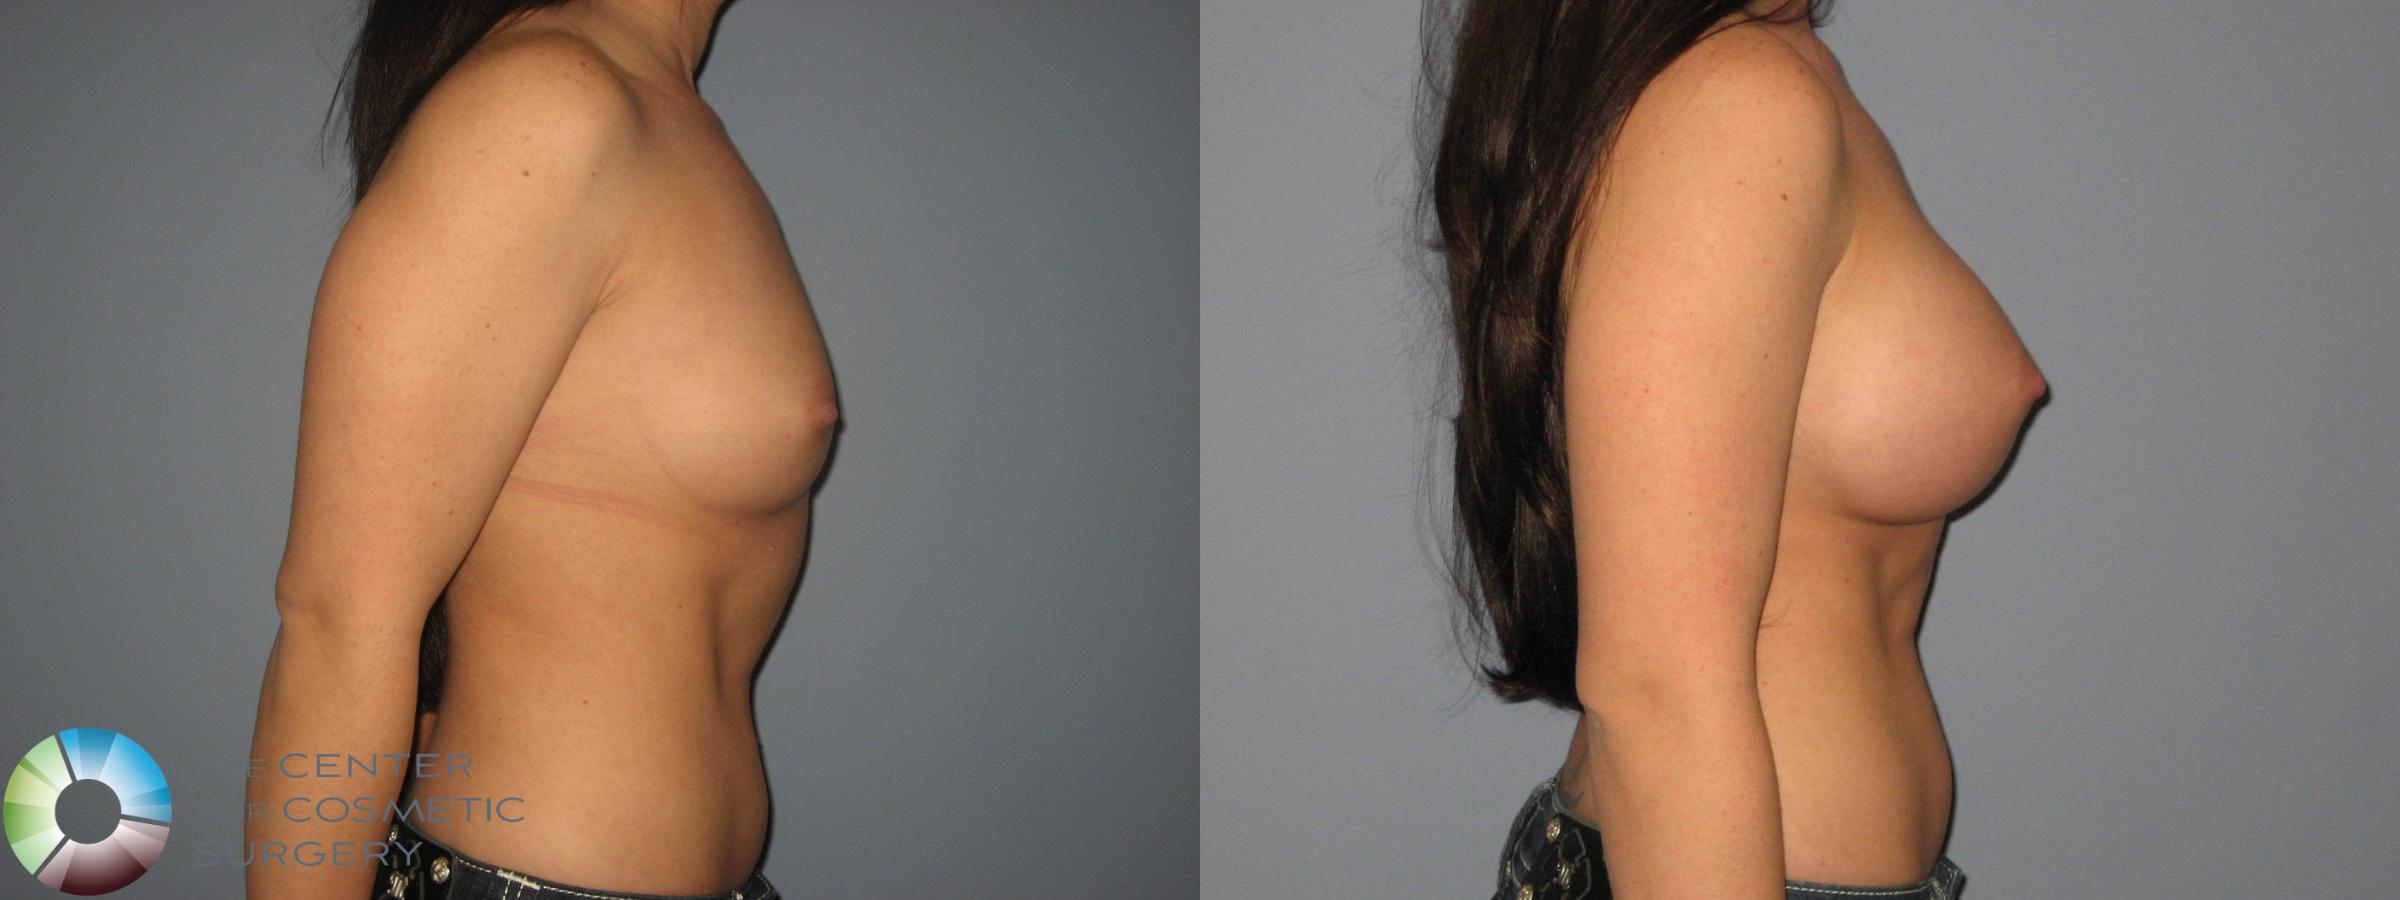 Breast Augmentation Case 411 Before & After View #2 | Golden, CO | The Center for Cosmetic Surgery